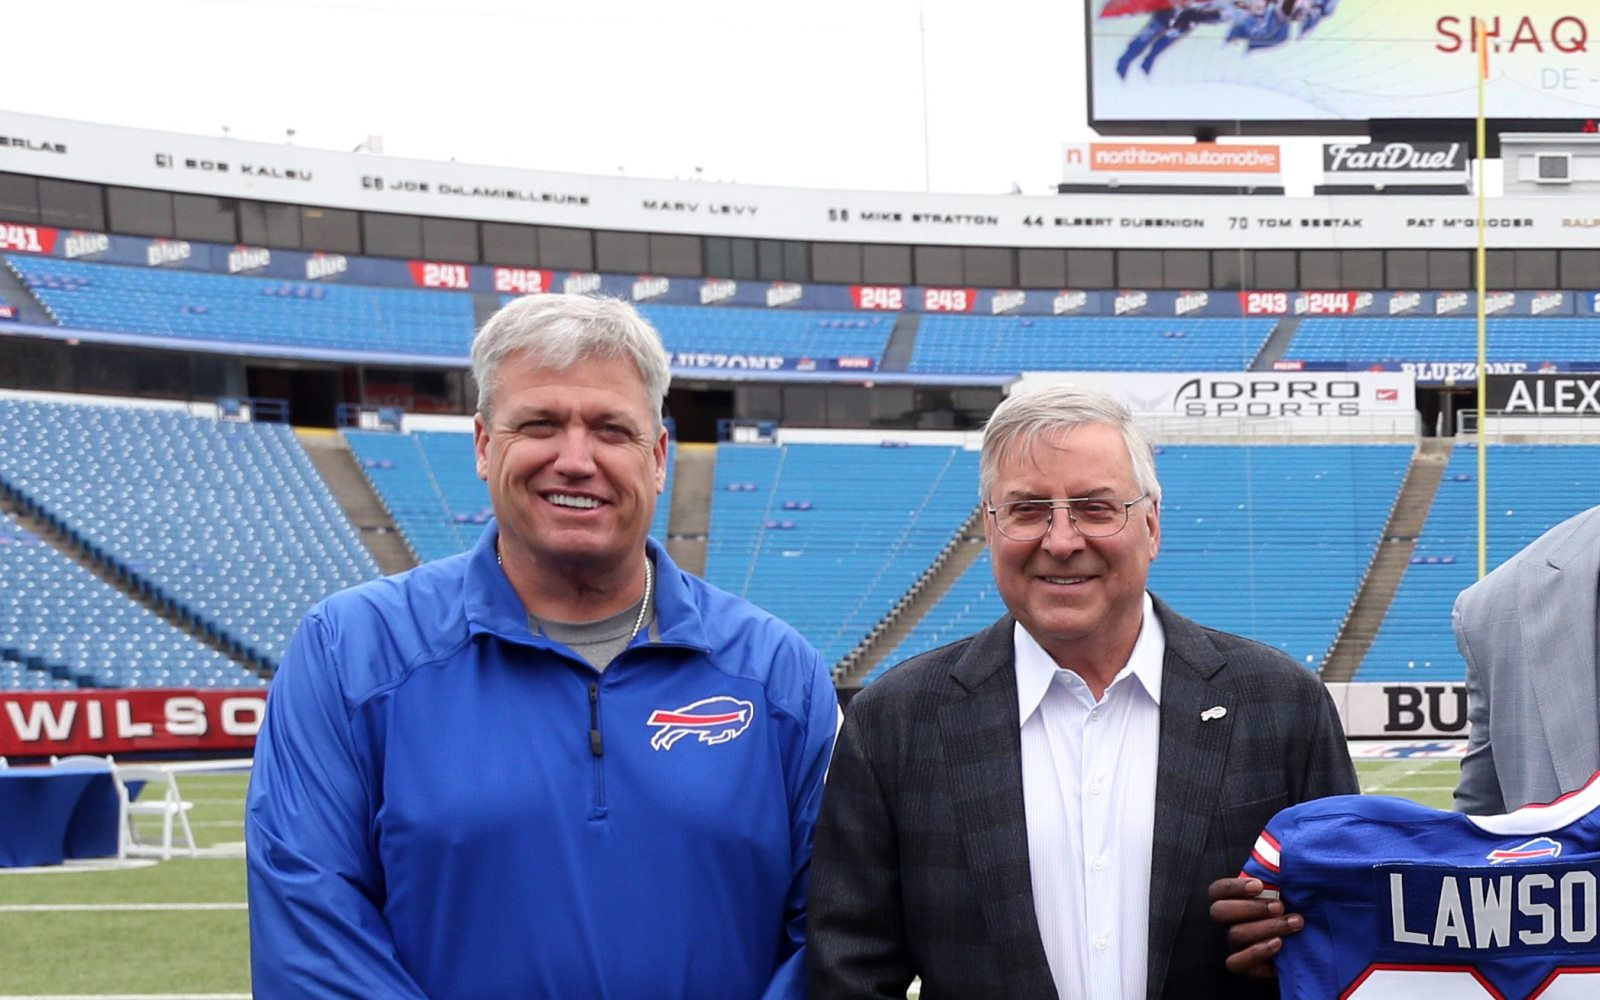 Bills owner Terry Pegula and then coach Rex Ryan posed together after the Bills drafted Shaq Lawson, (James P. McCoy/Buffalo News)